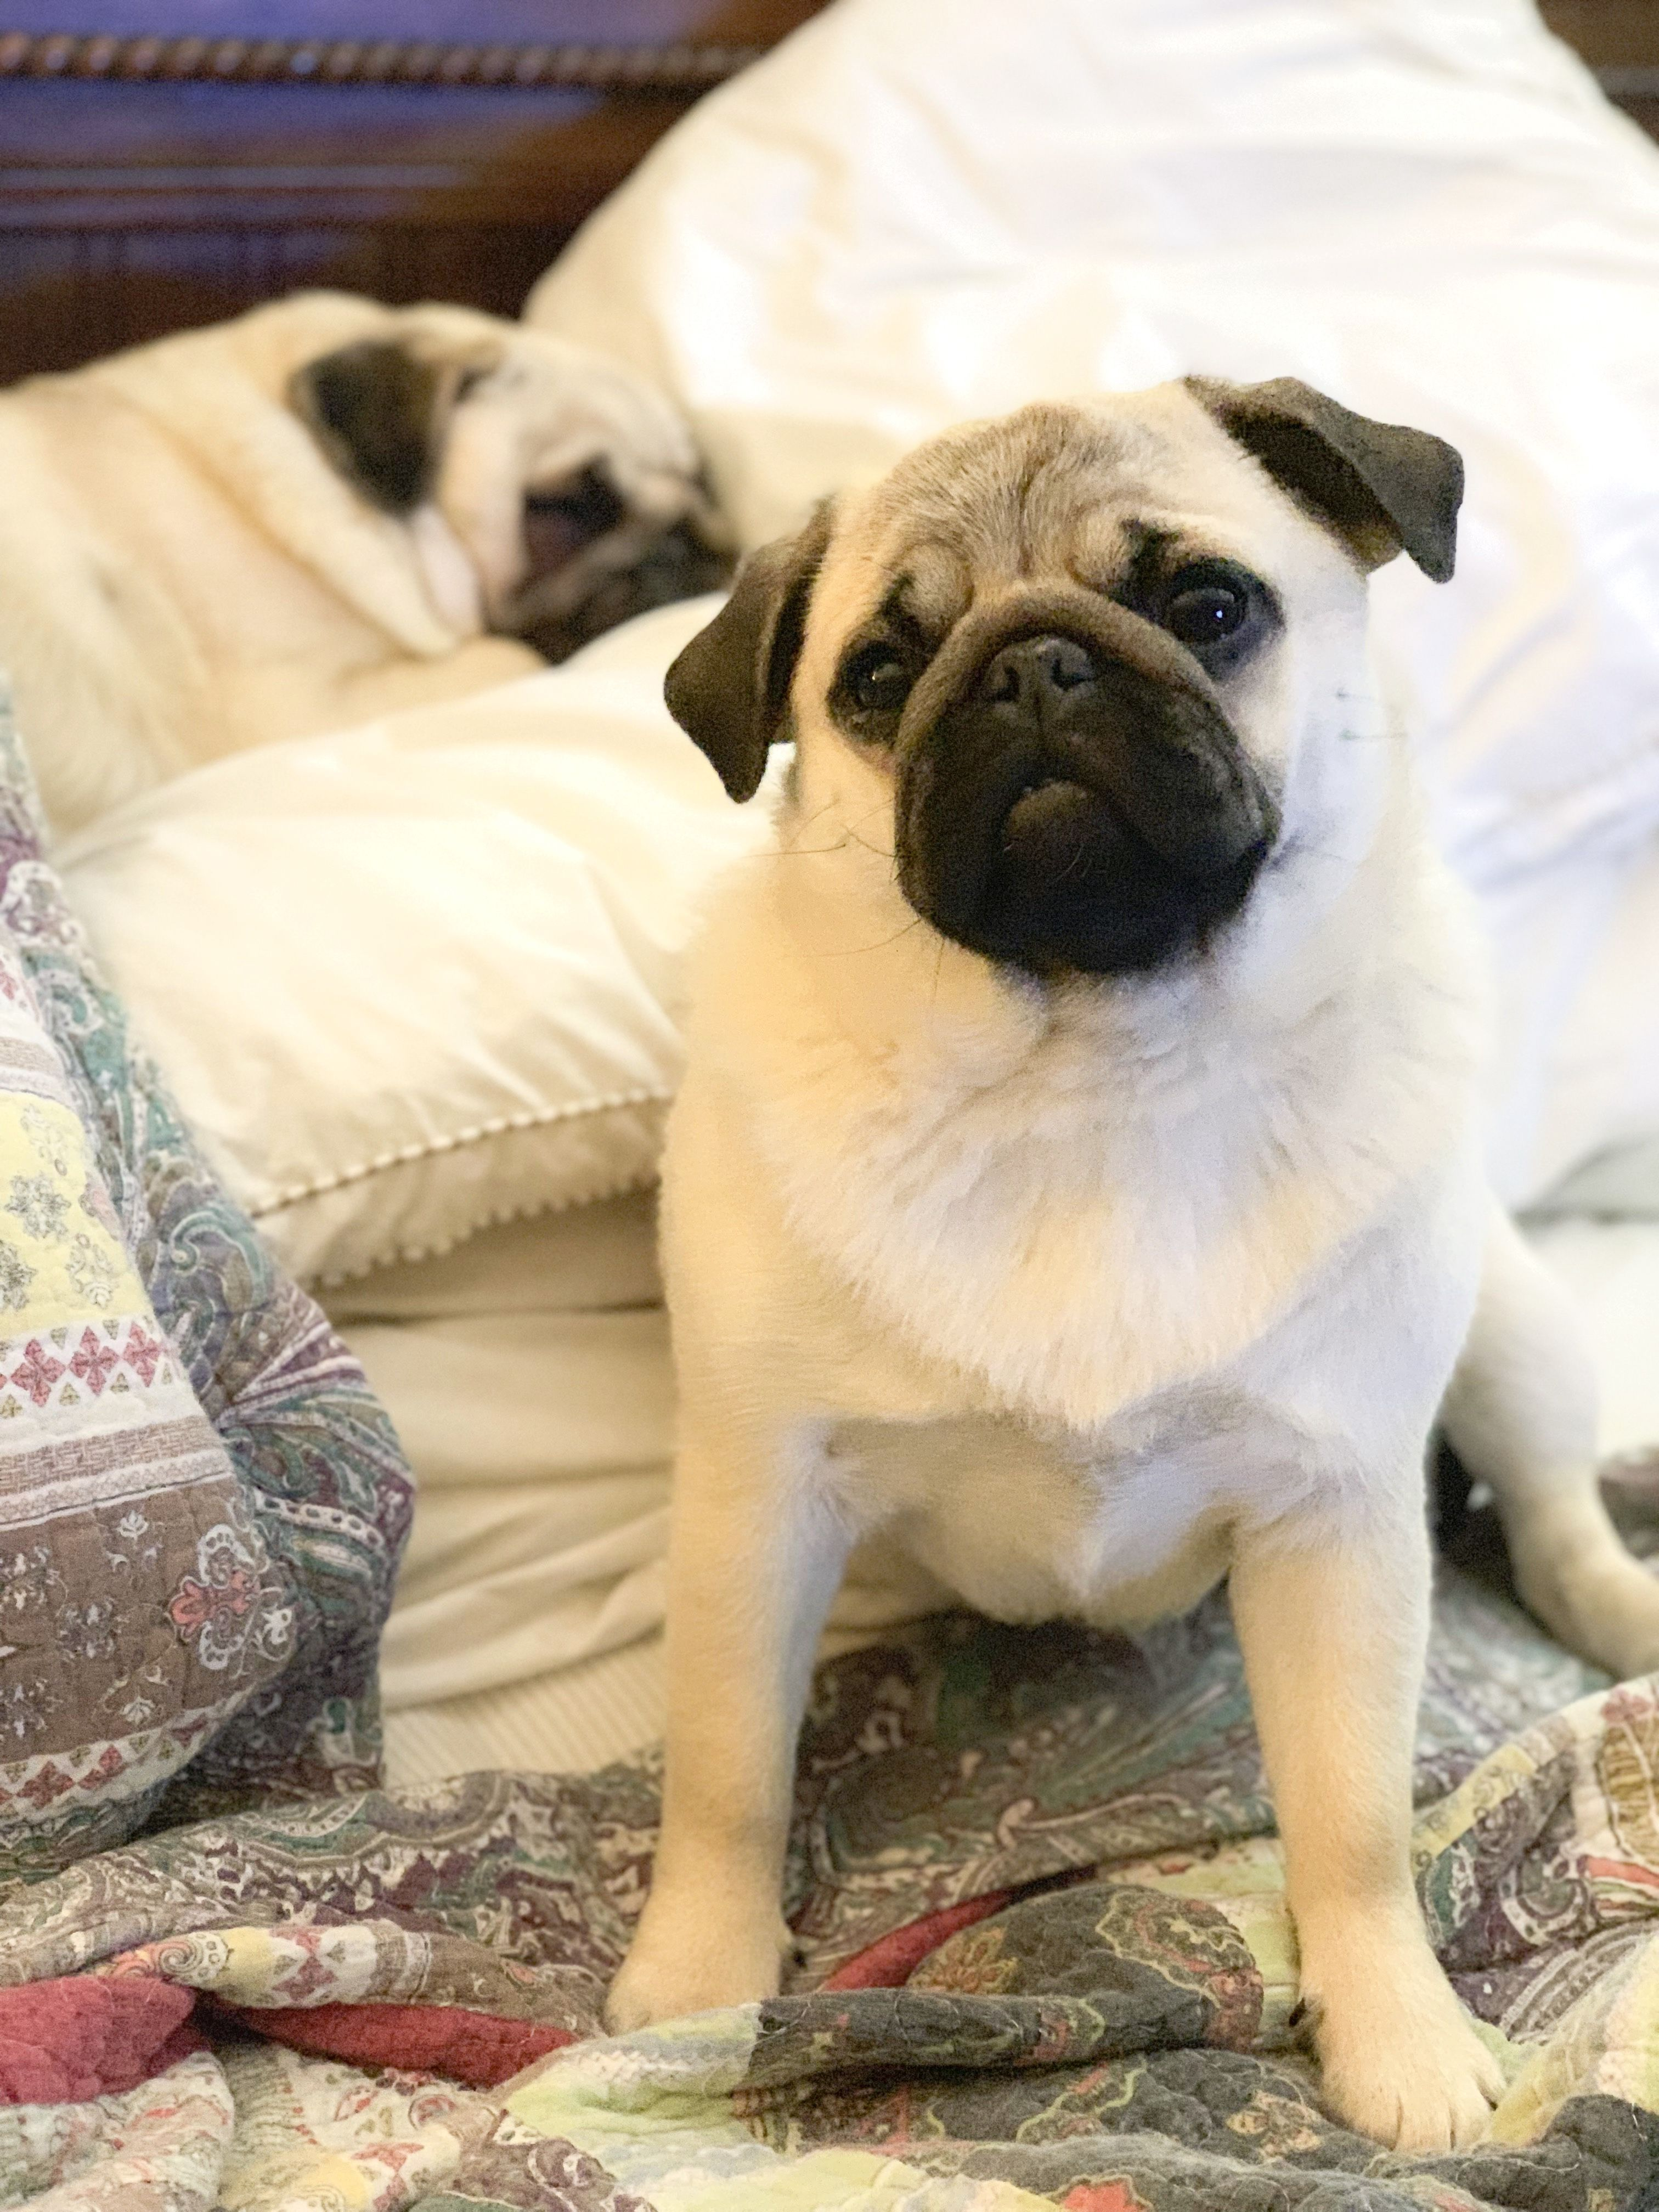 Pin By Nana Covington On Pugs Pugs And More Pugs Baby Dogs